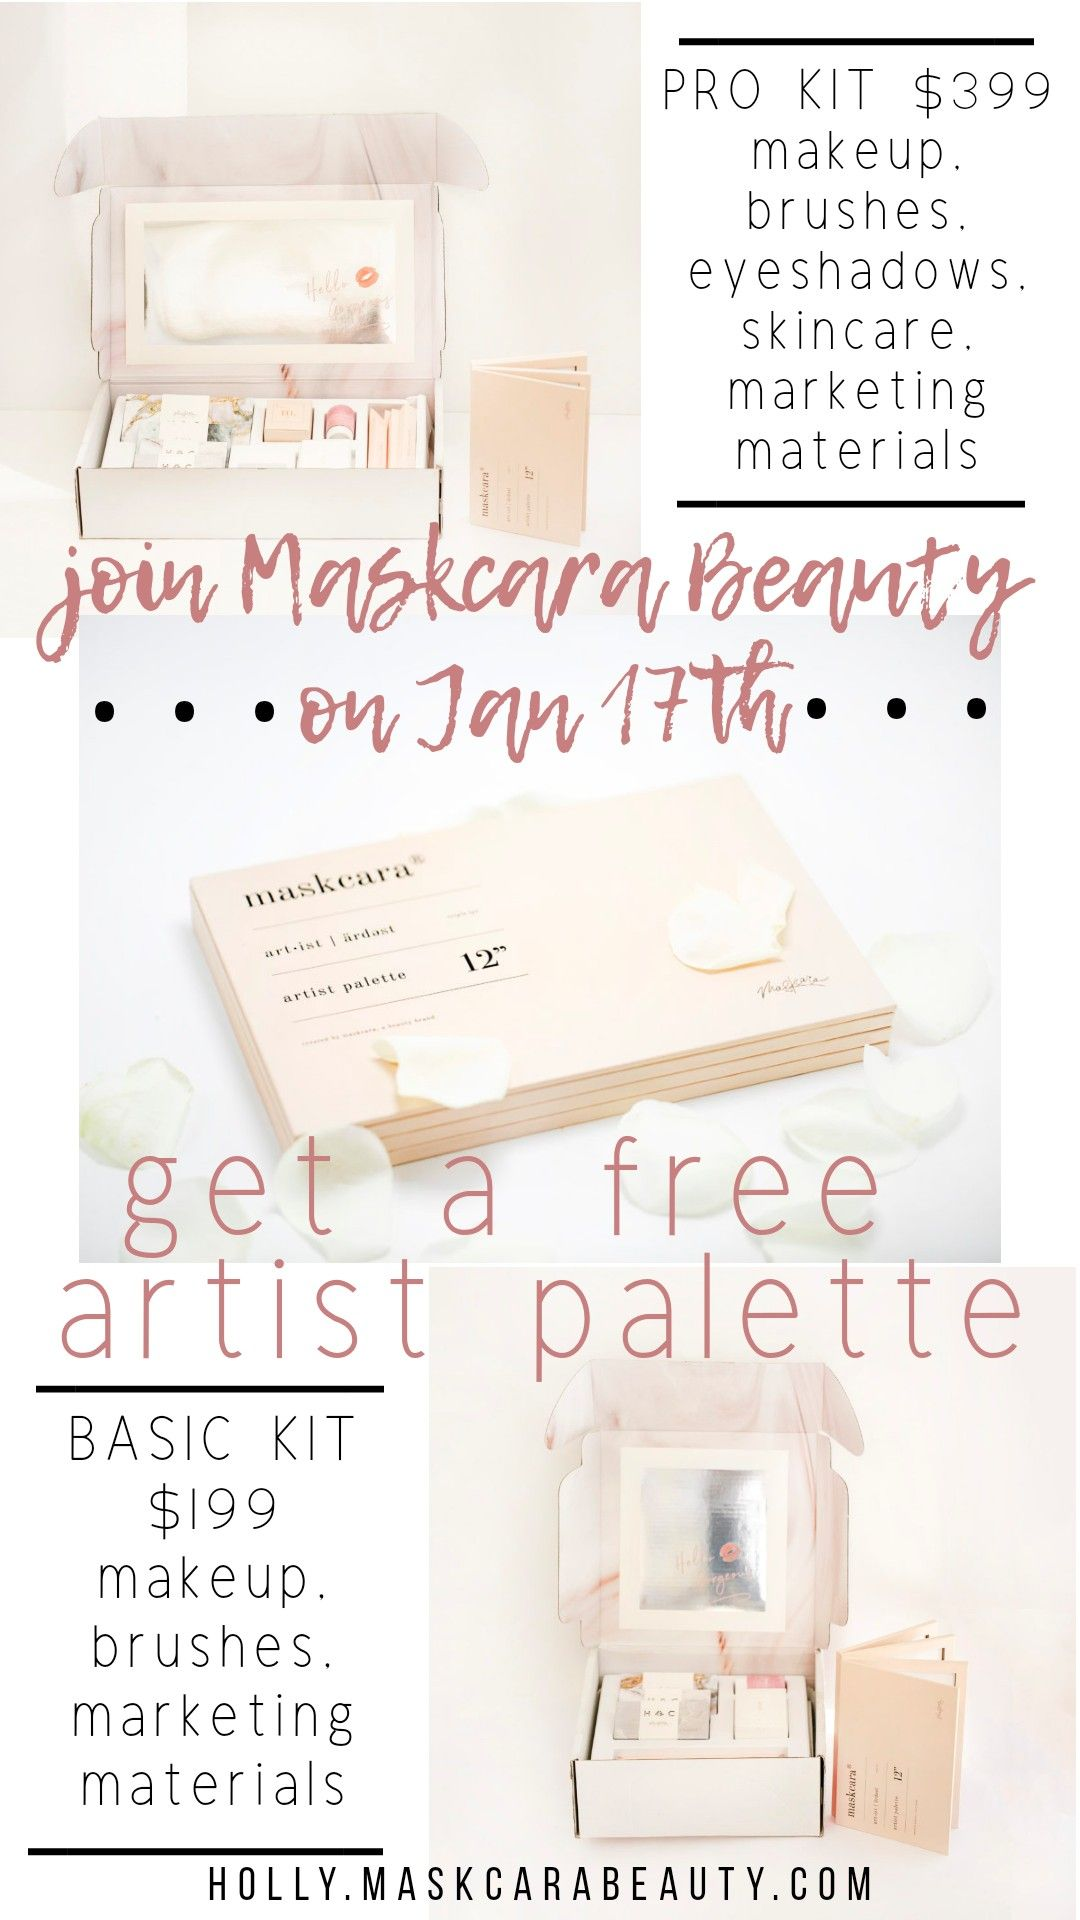 Maskcara Artist sign up incentive! On January 17th ONLY